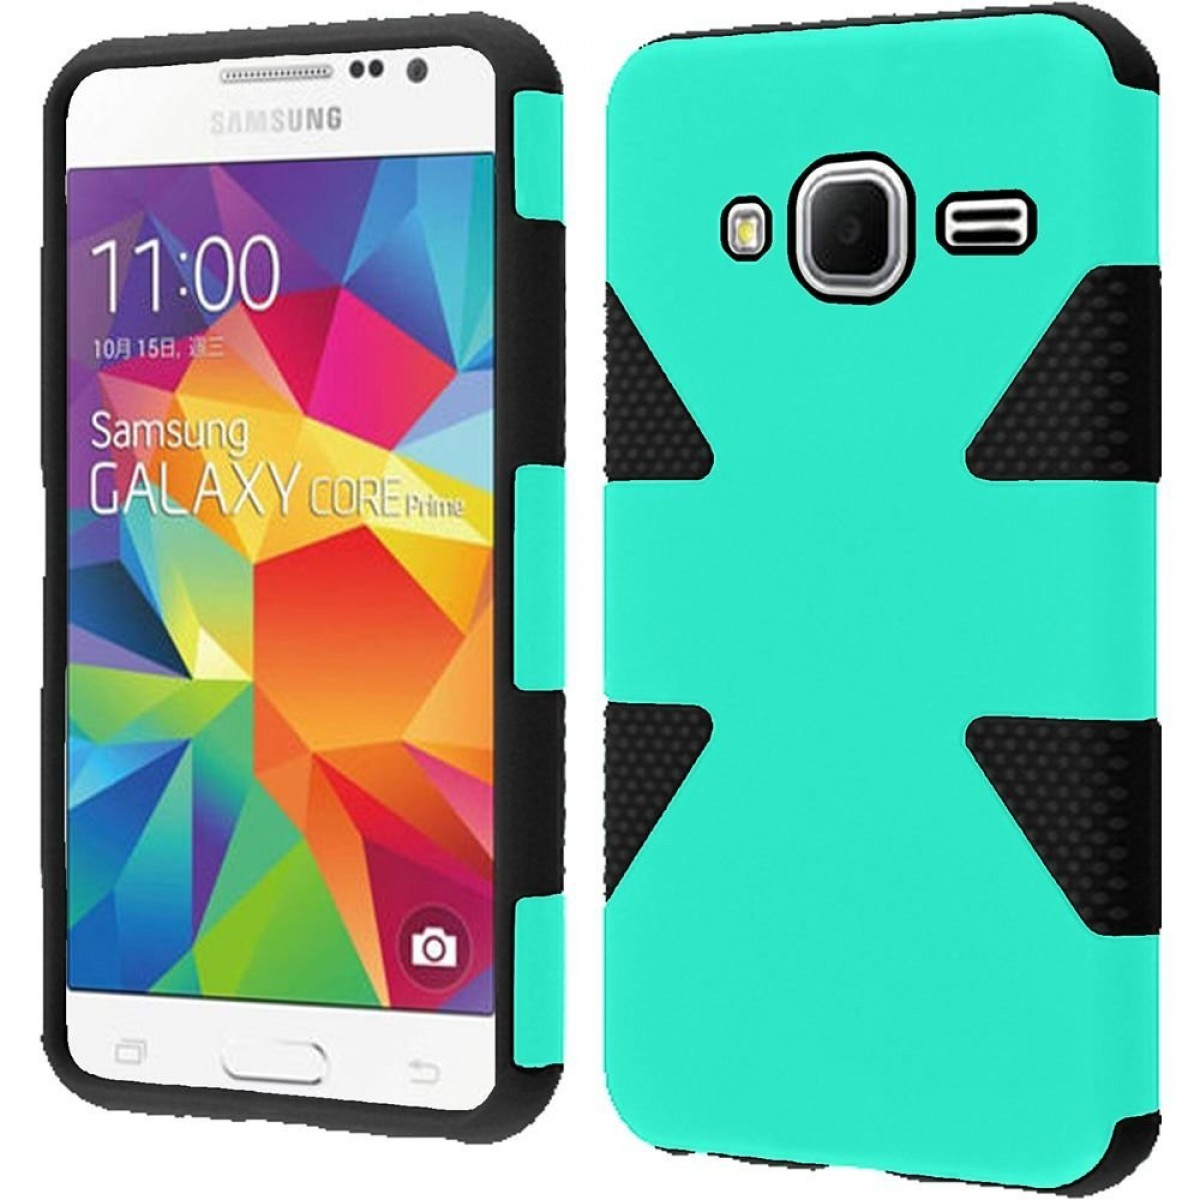 best loved fa1d6 8aeb9 HR Wireless Samsung Galaxy Prevail LTE G360 Core Prime Dynamic Cover Case -  Retail Packaging - Teal/Black